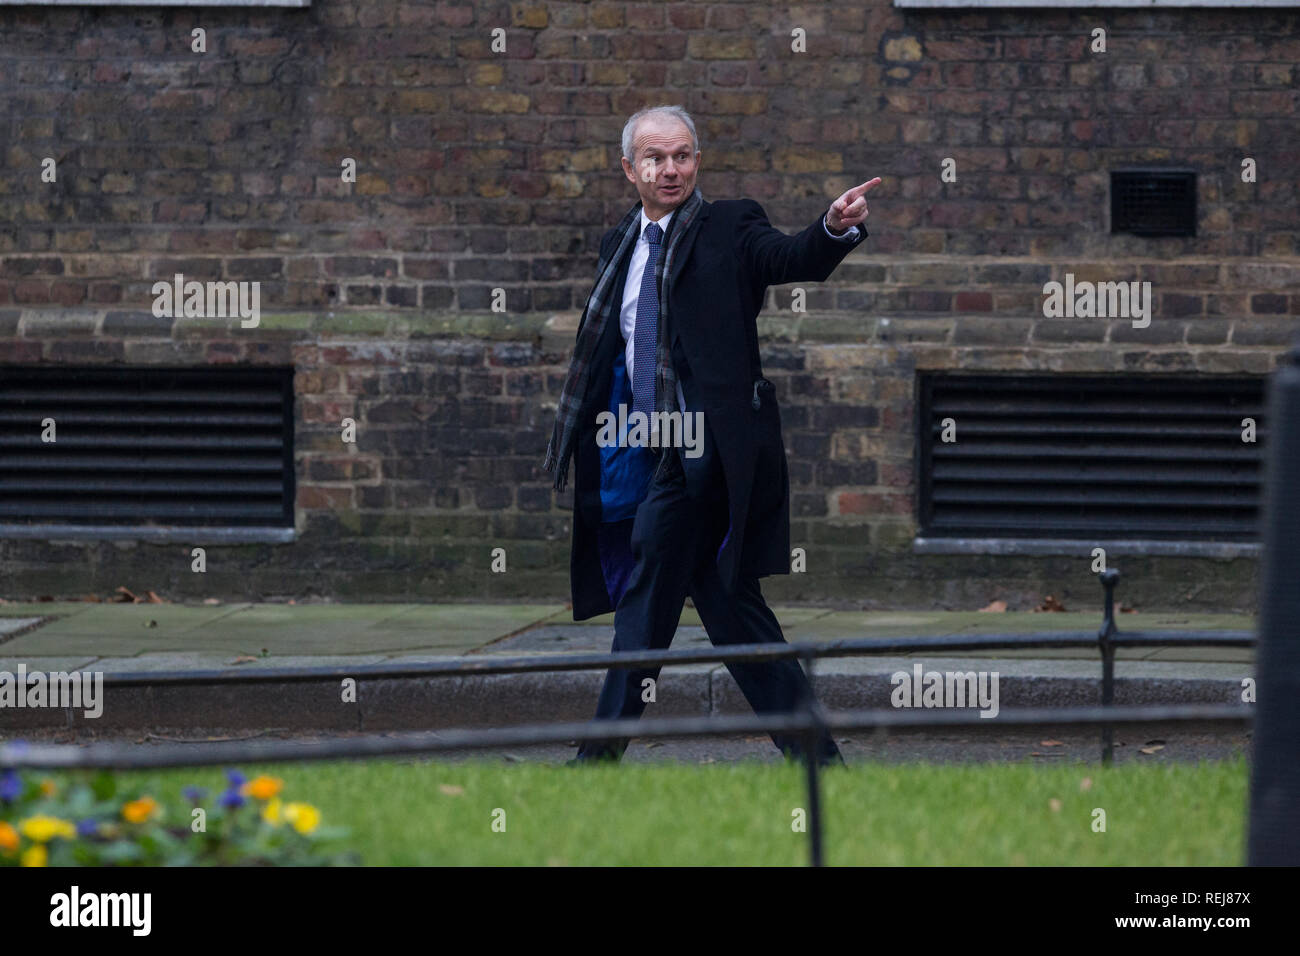 David Lidington, Chancellor of the Duchy of Lancaster, Minister for the Cabinet Office arriving at No.10 Downing Street, Whitehall, London, UK - Stock Image